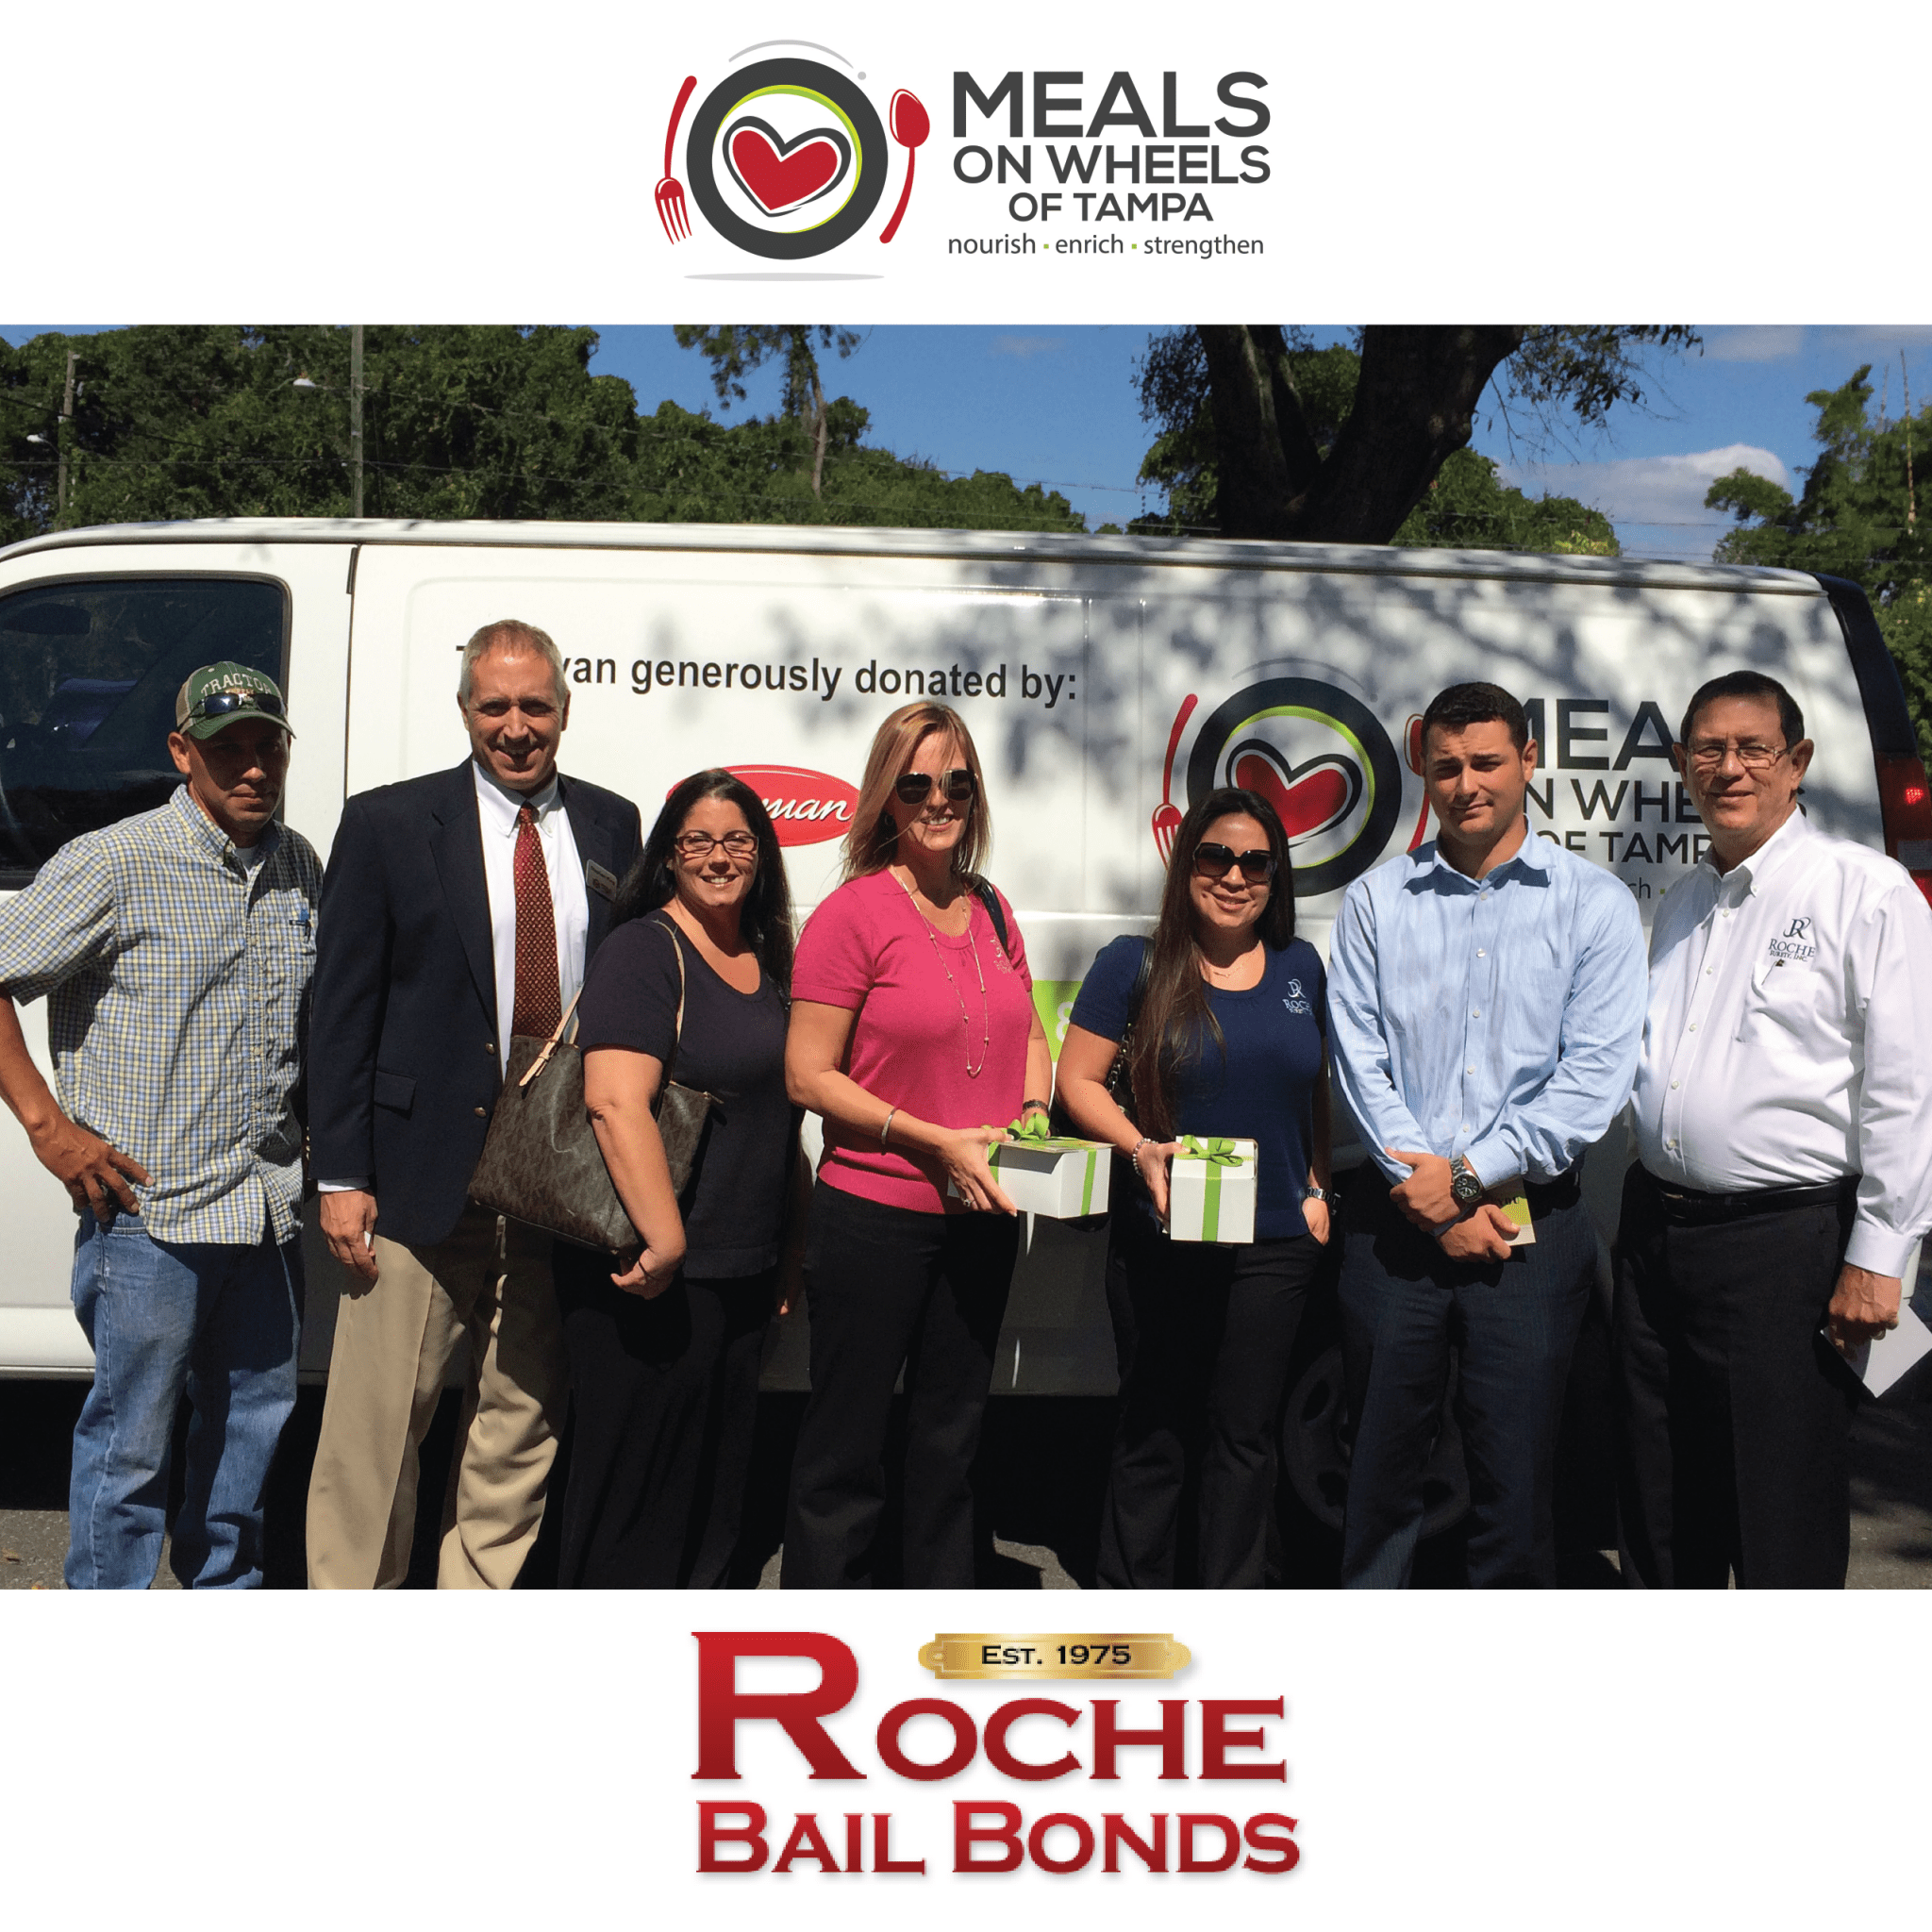 Suncoast Credit Union Locations >> Adopt-a-Route - Meals On Wheels of Tampa